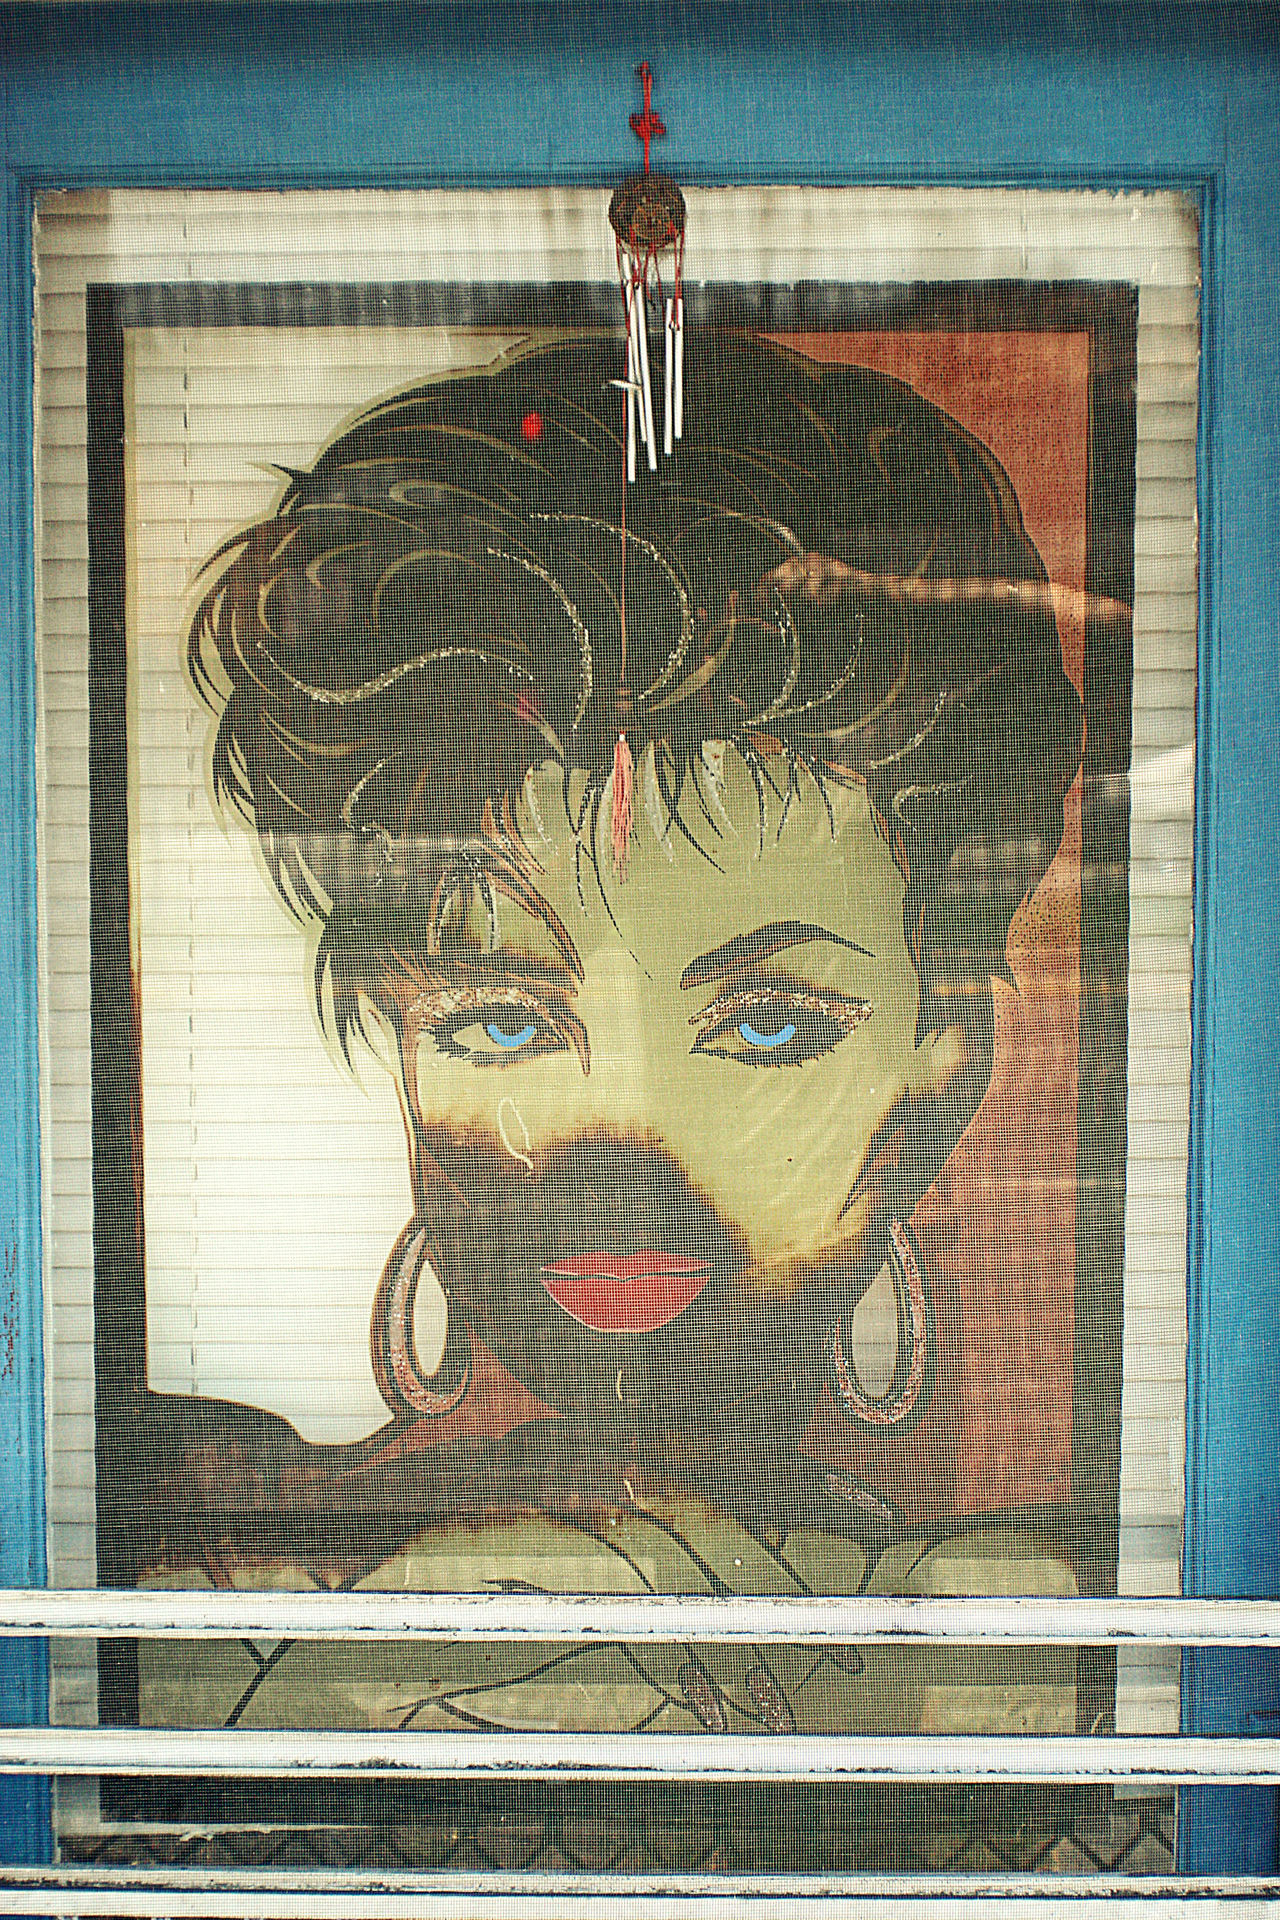 #bearded Lady #ghetto #Nagel #Design #stock Illustration #urban Nail Salon Salon Small Business